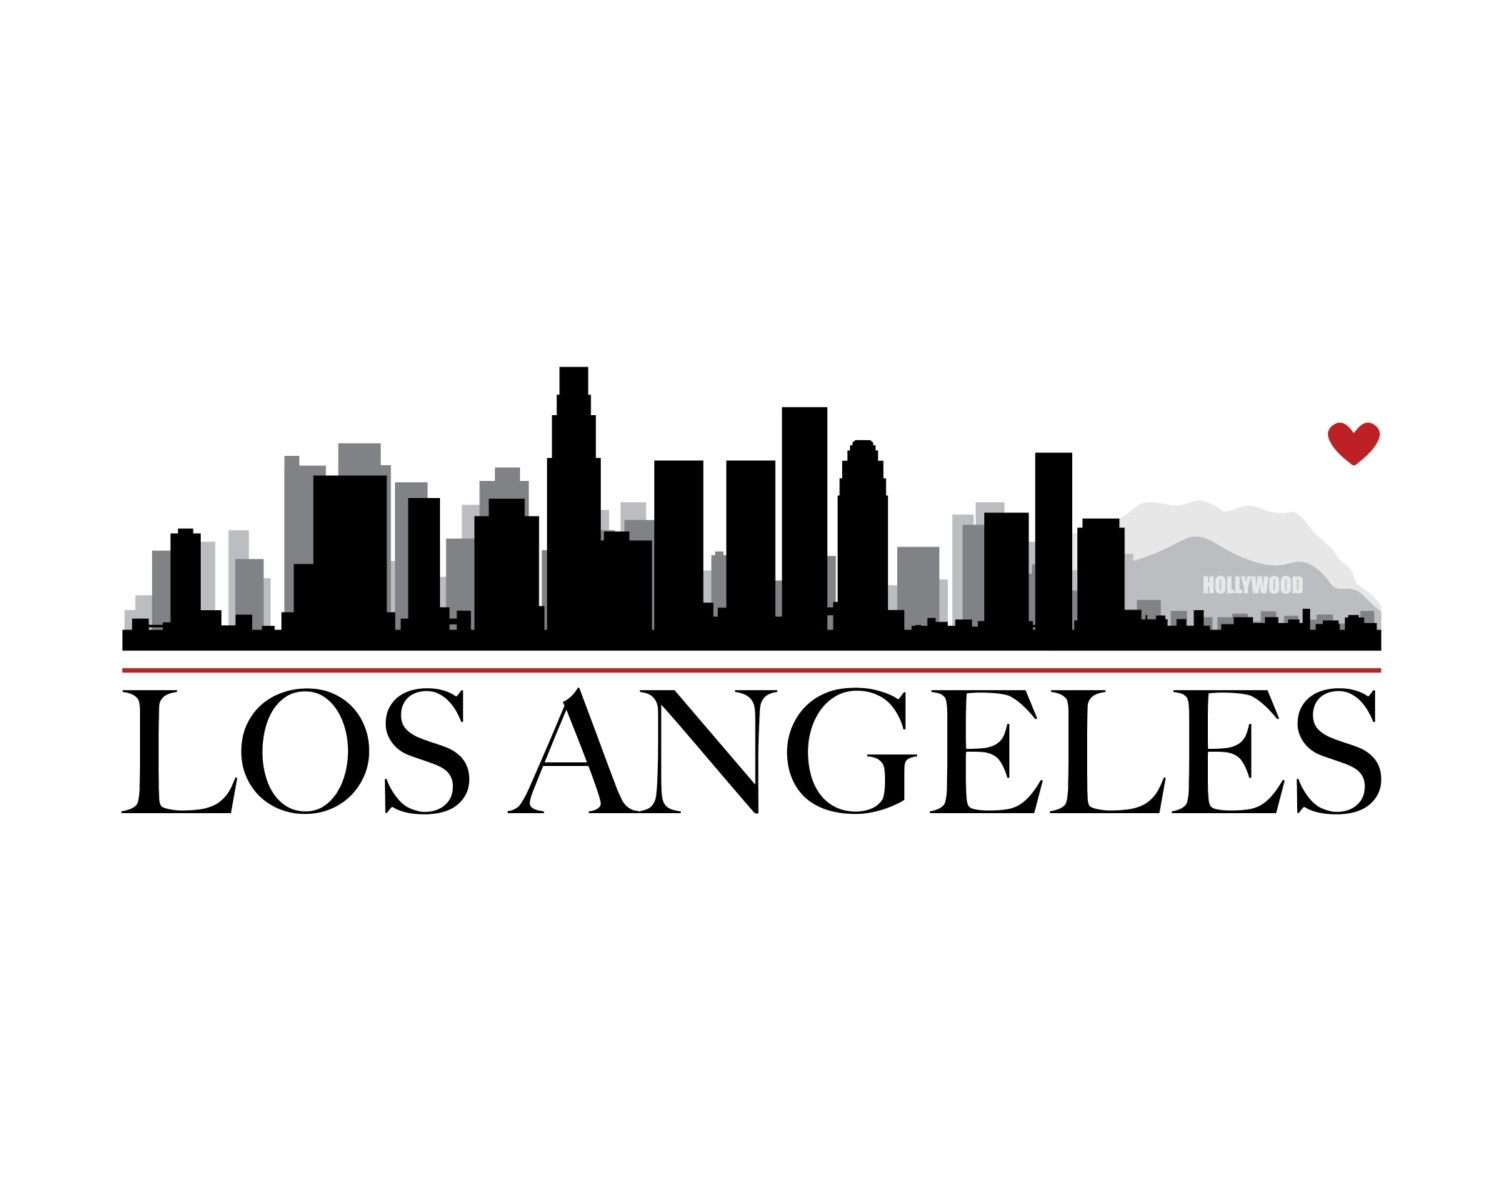 Los Angeles City Skyline With Heart Diy Printable Wall Art | Etsy Inside Los Angeles Wall Art (View 11 of 20)